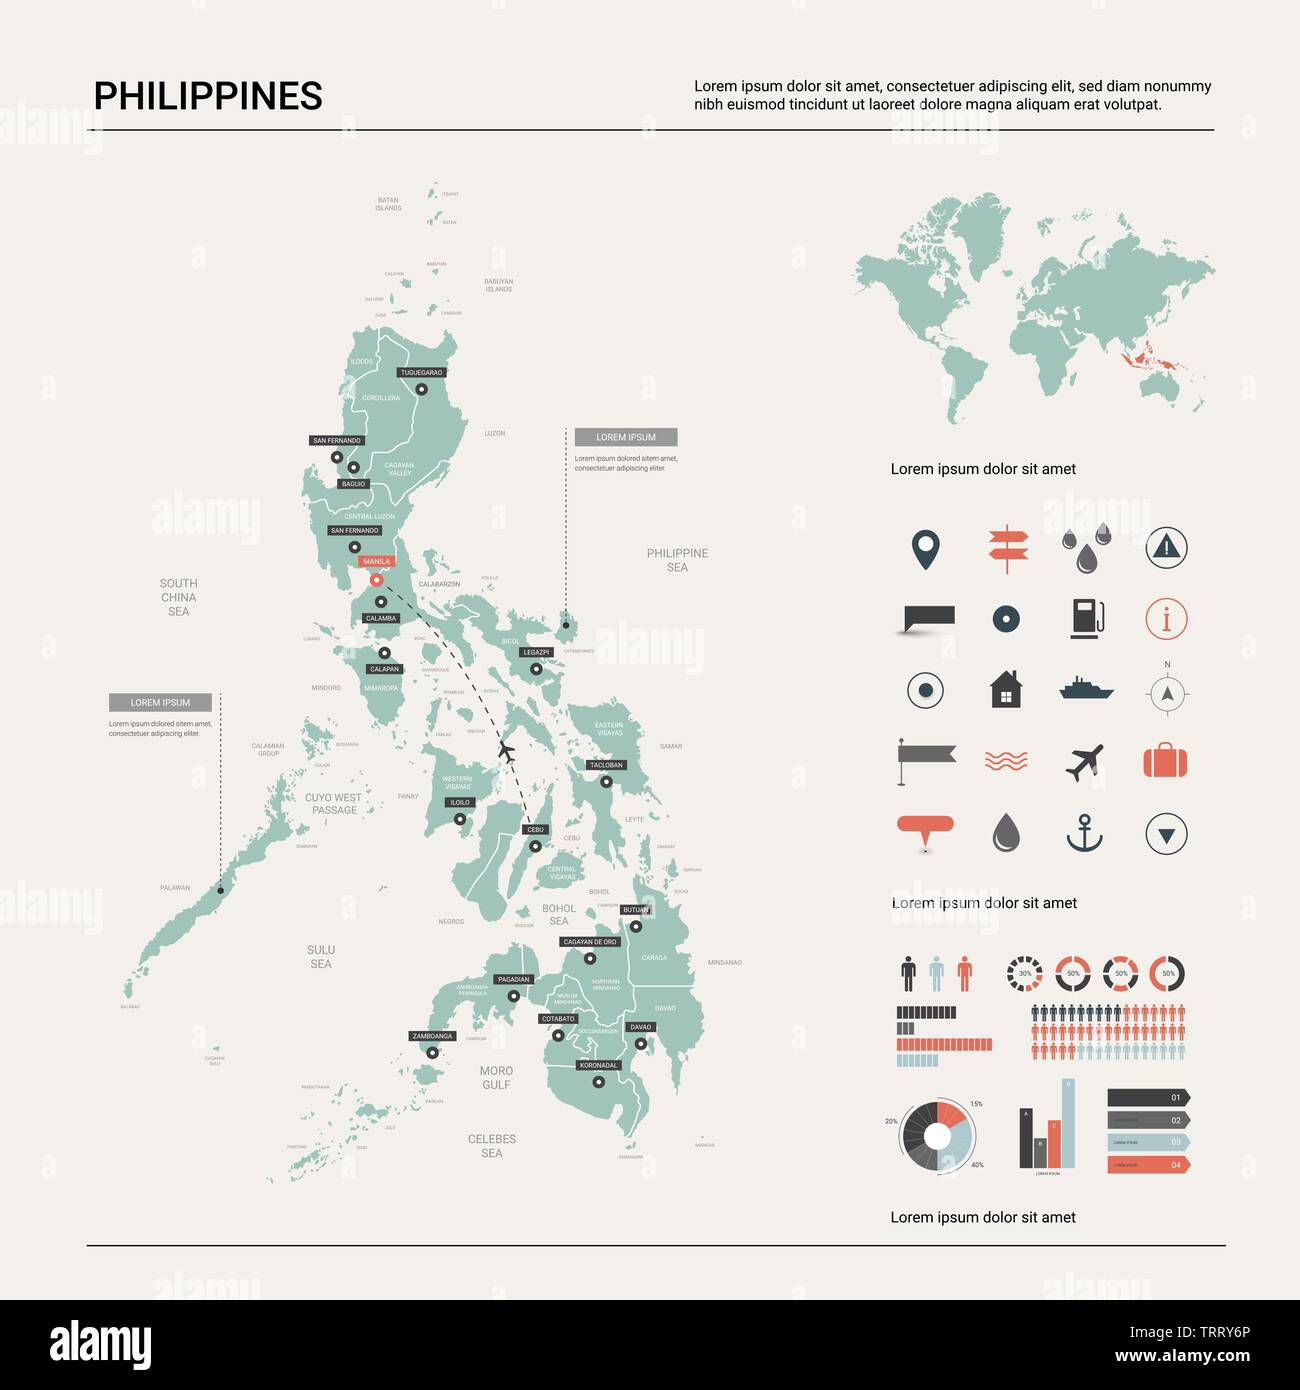 Illustration Map Of Philippines In World on map showing philippines, map of philippines in imperialism, map of philippines in asia, map of bohol island philippines, map of morocco and surrounding countries, map of philippines on world map,